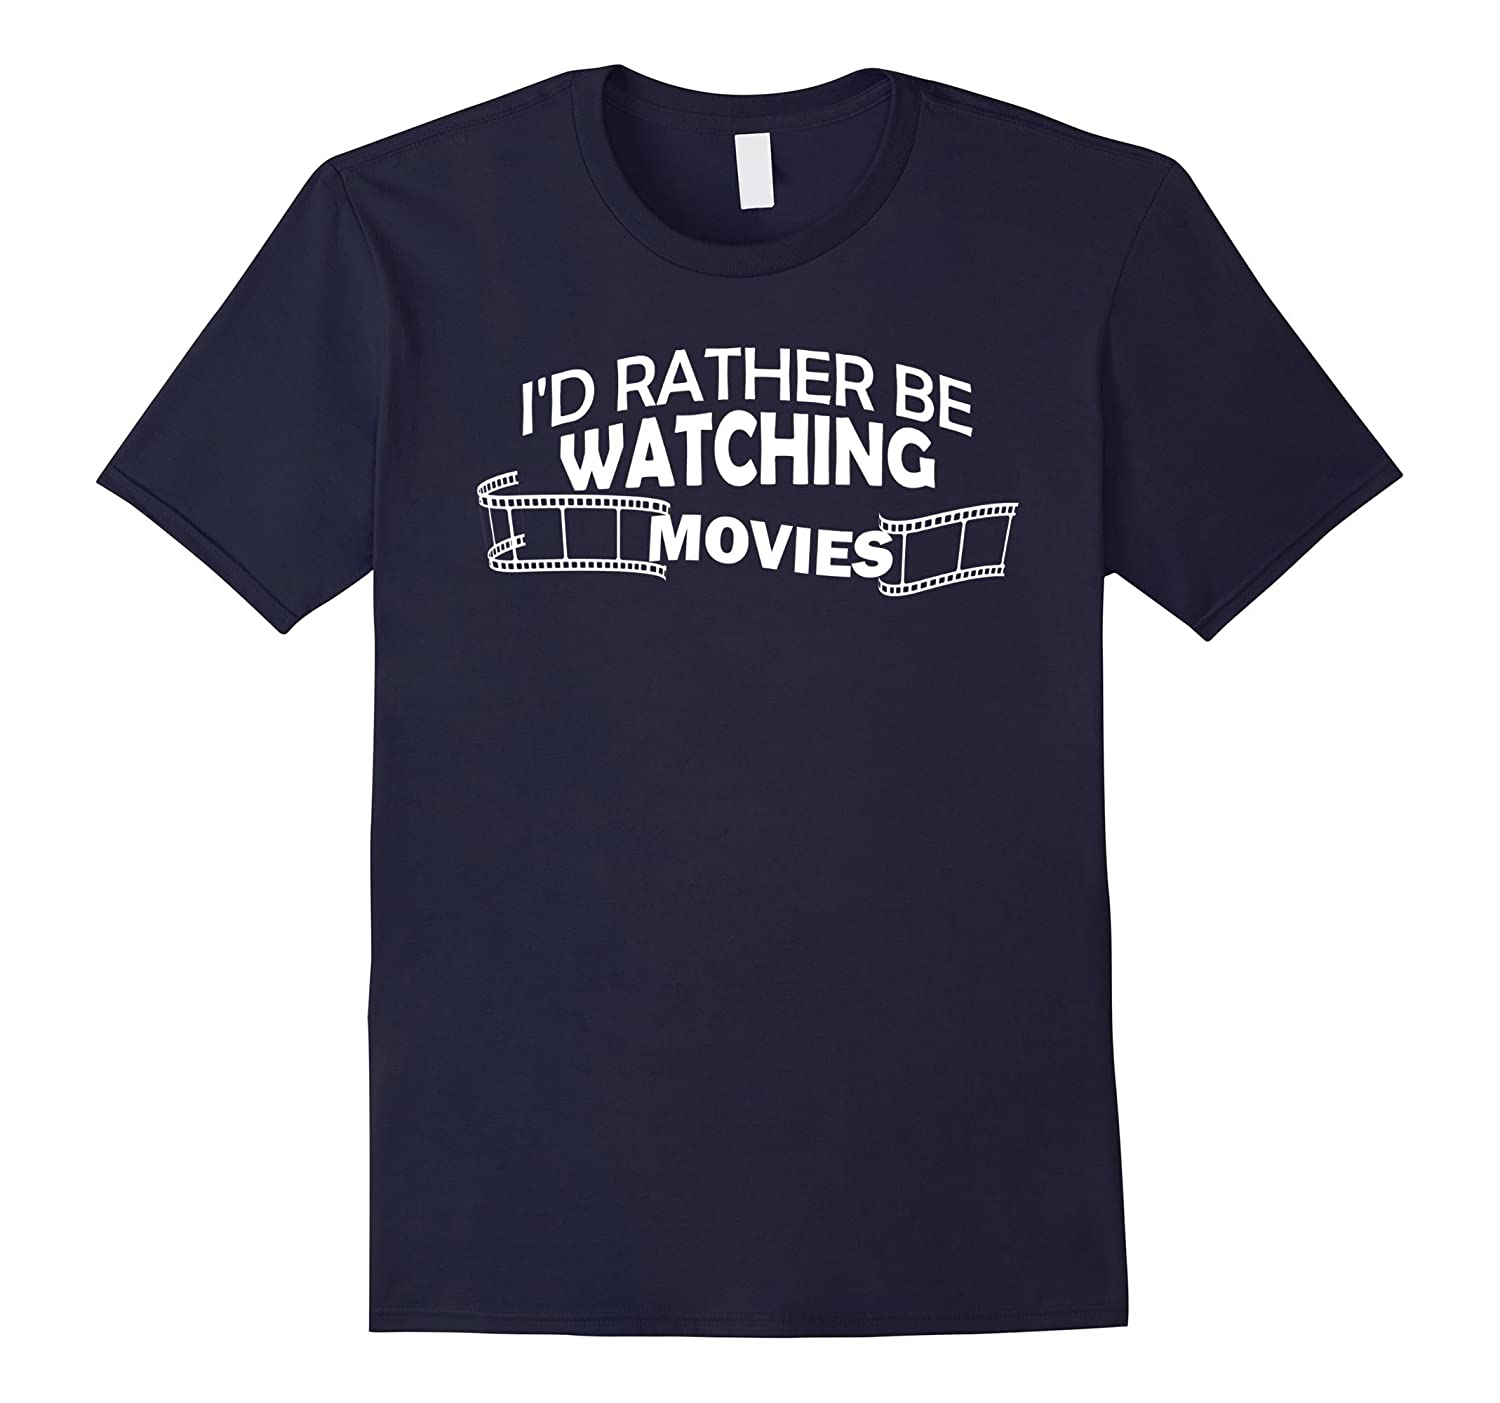 Movies T-shirt – I'd rather be Watching movies-Teevkd